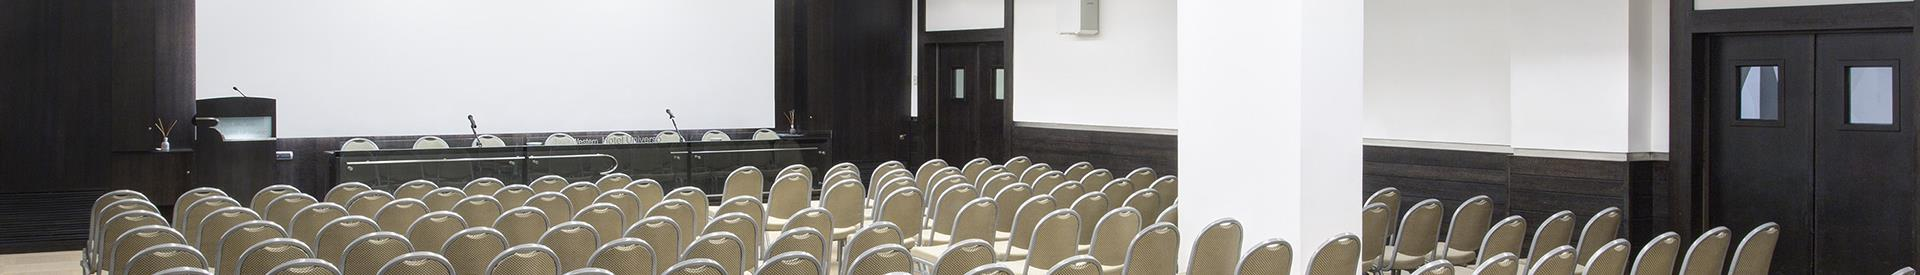 4 star hotel Meeting rooms Rome